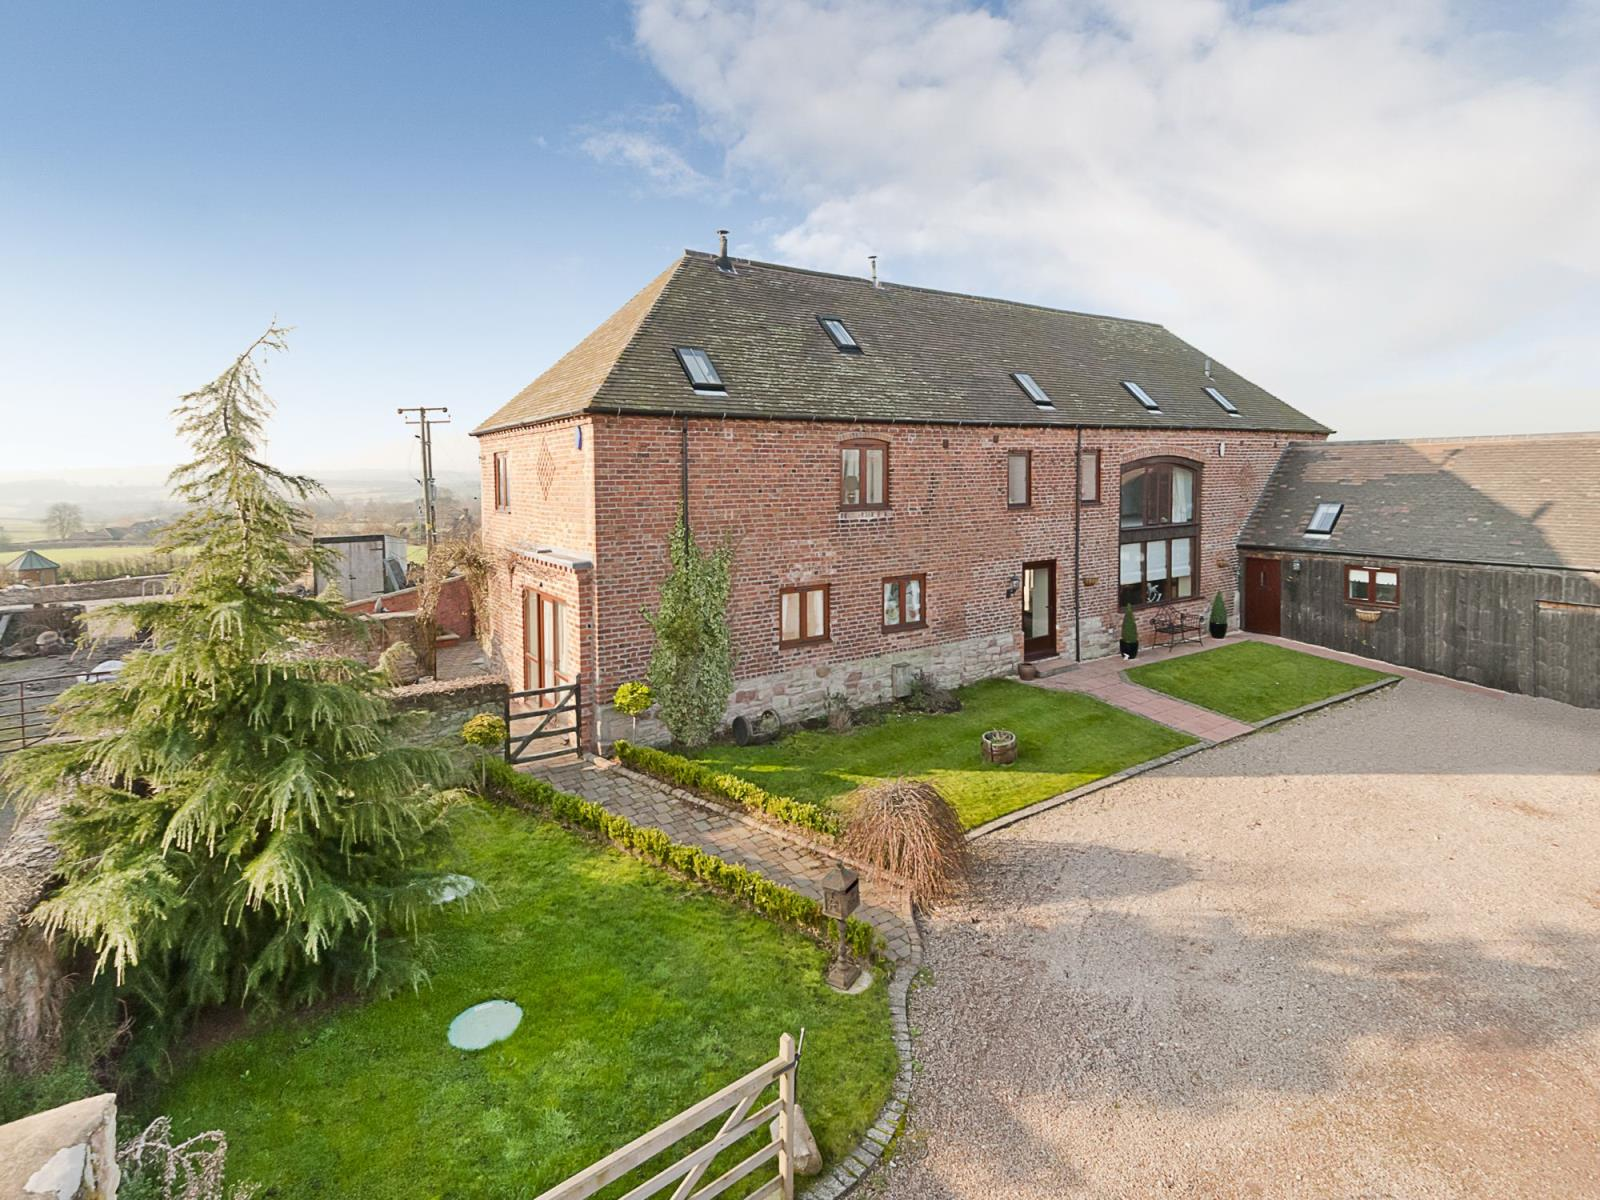 3 Bedrooms Barn Conversion Character Property for sale in The Shire, Spadeley Farm Barns, Chelmarsh, Bridgnorth, Shropshire, WV16